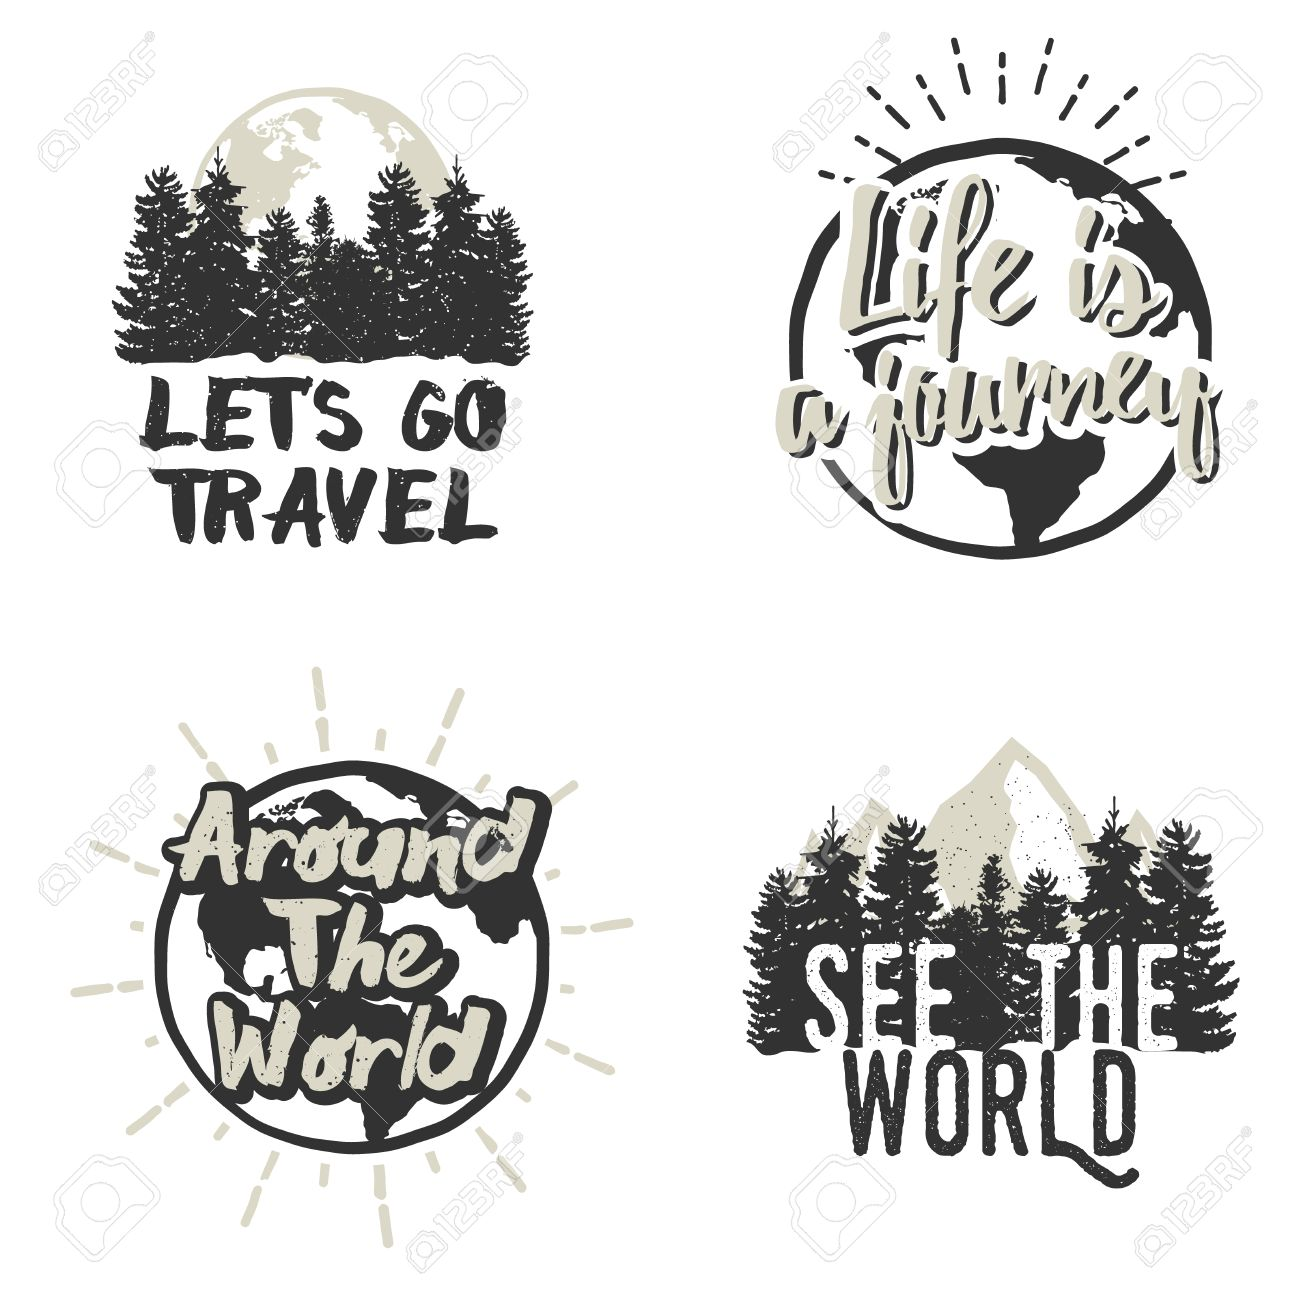 Adventure emblems with different travel design elements map adventure emblems with different travel design elements map of earth mountains trees silhouettes gumiabroncs Choice Image